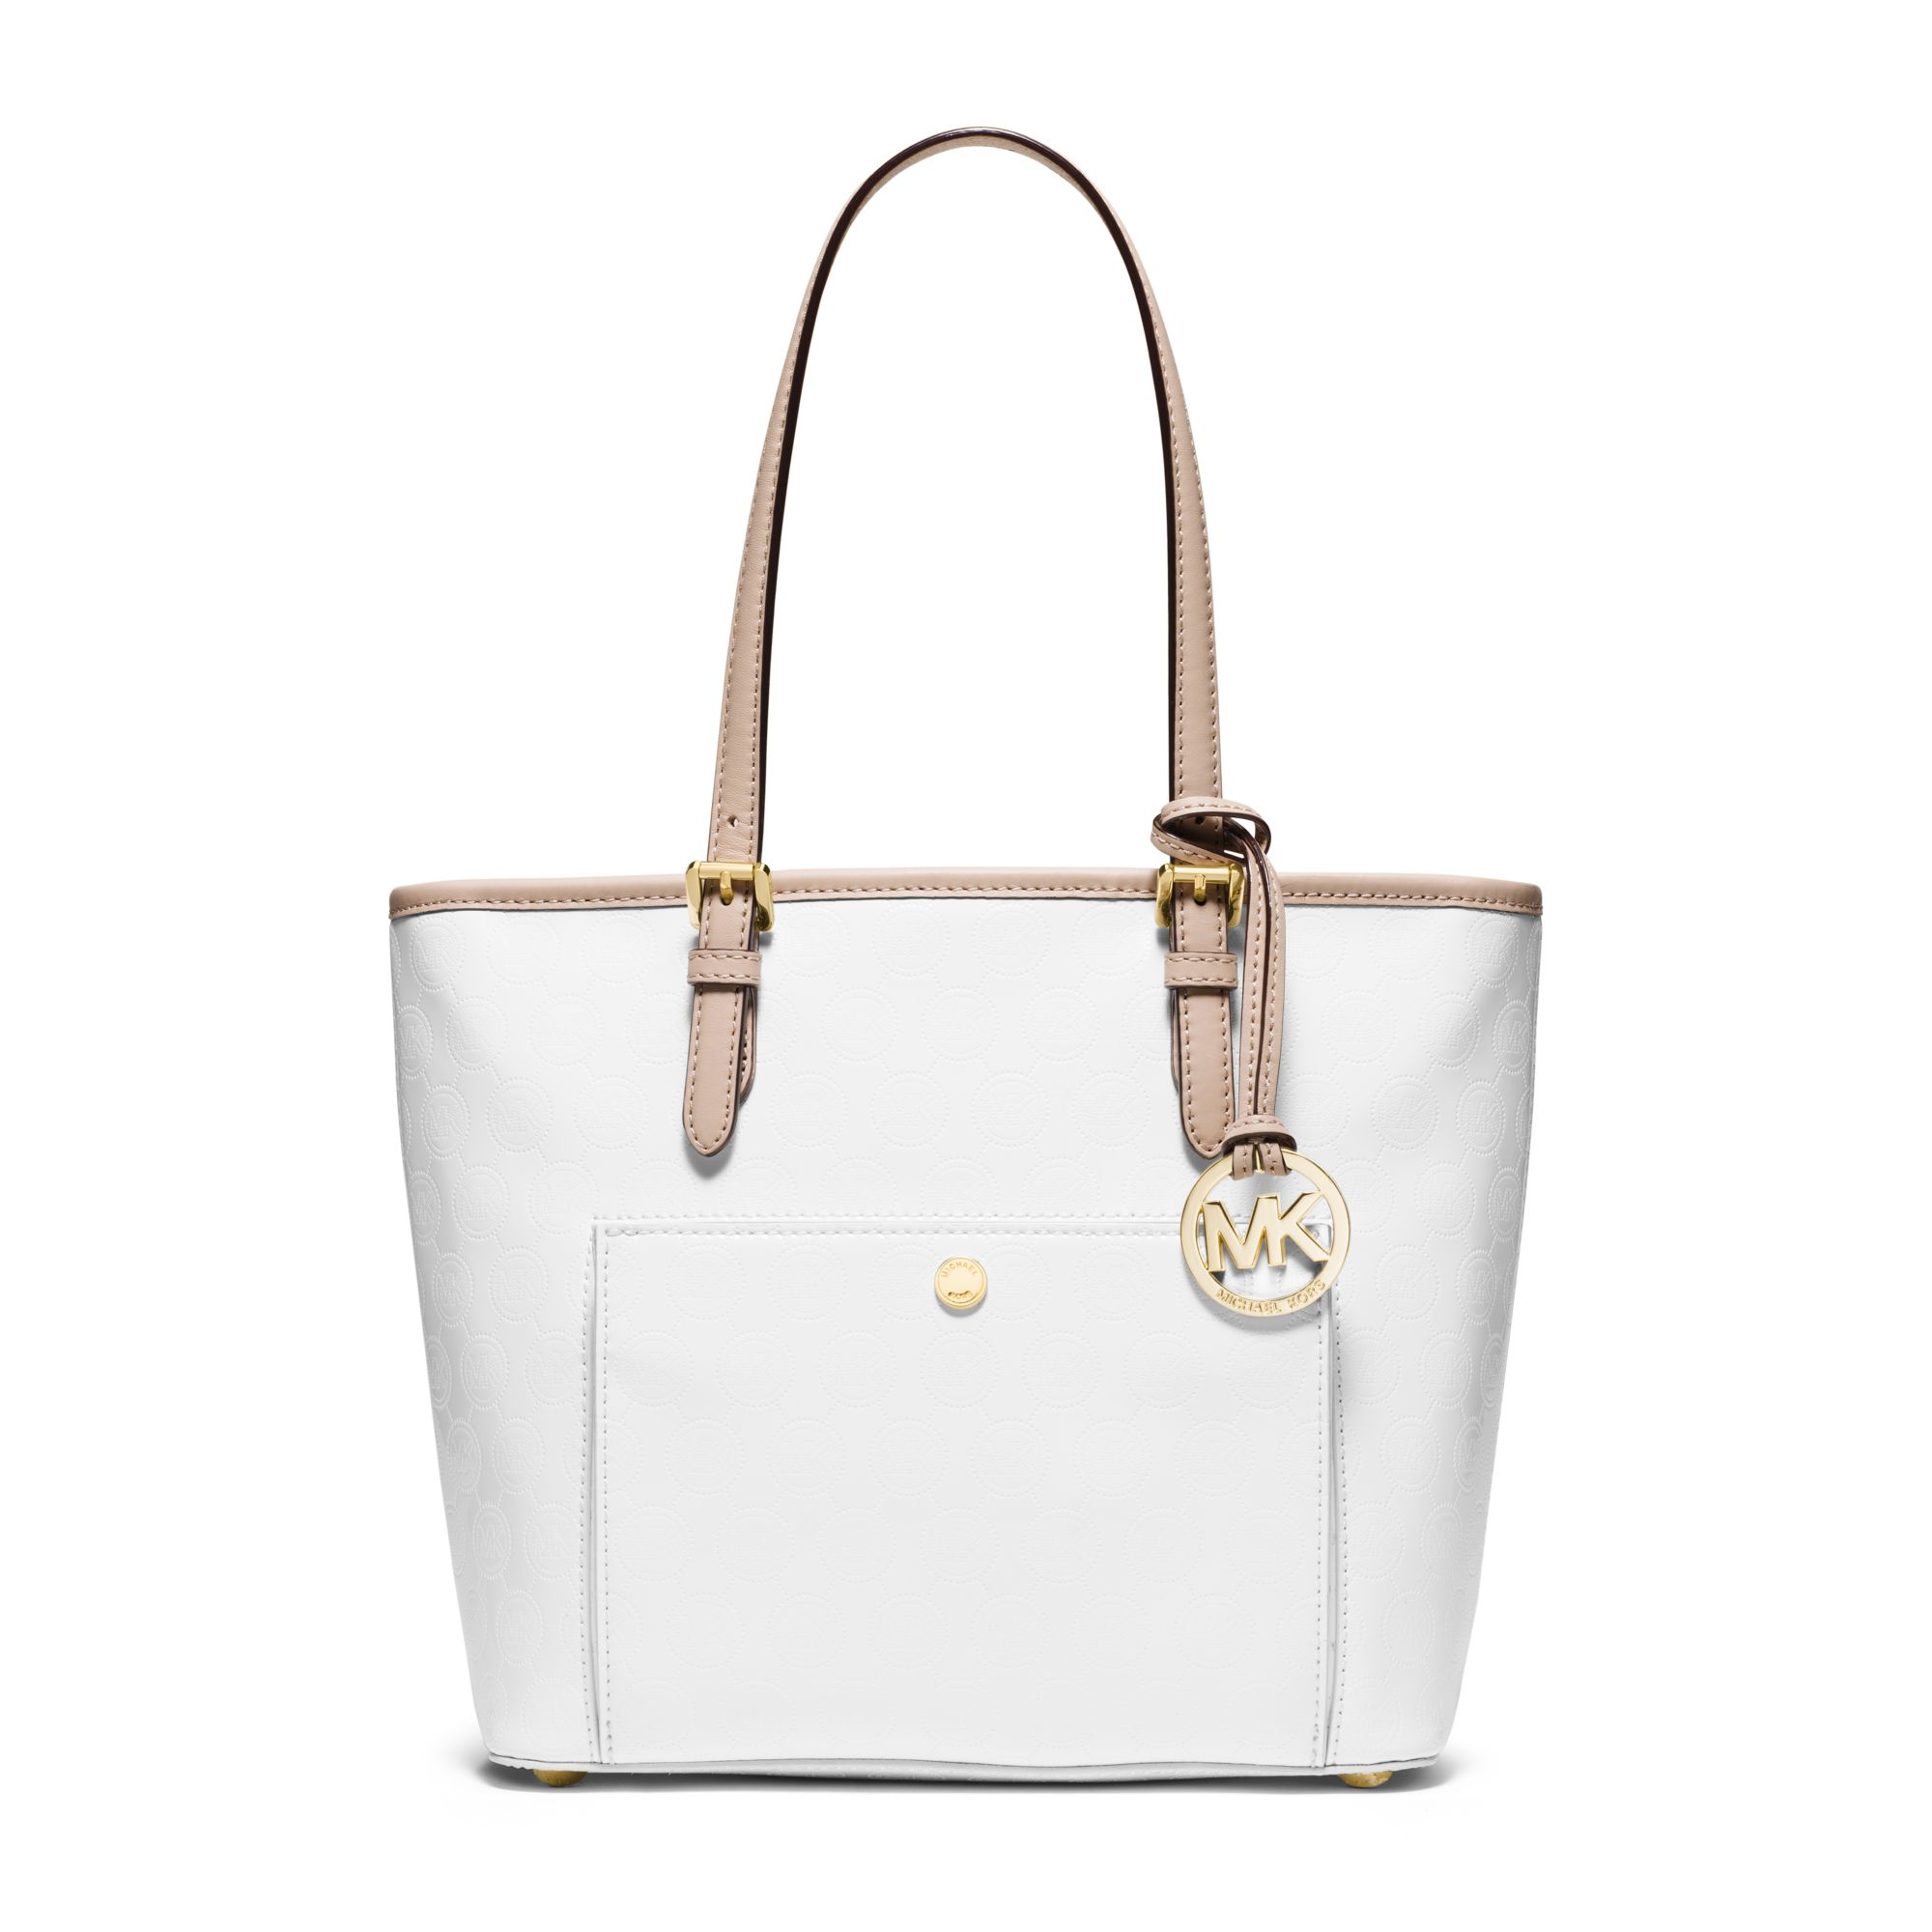 Lyst - Michael Kors Jet Set Travel Medium Metallic Leather Tote in White 0fa7285a5